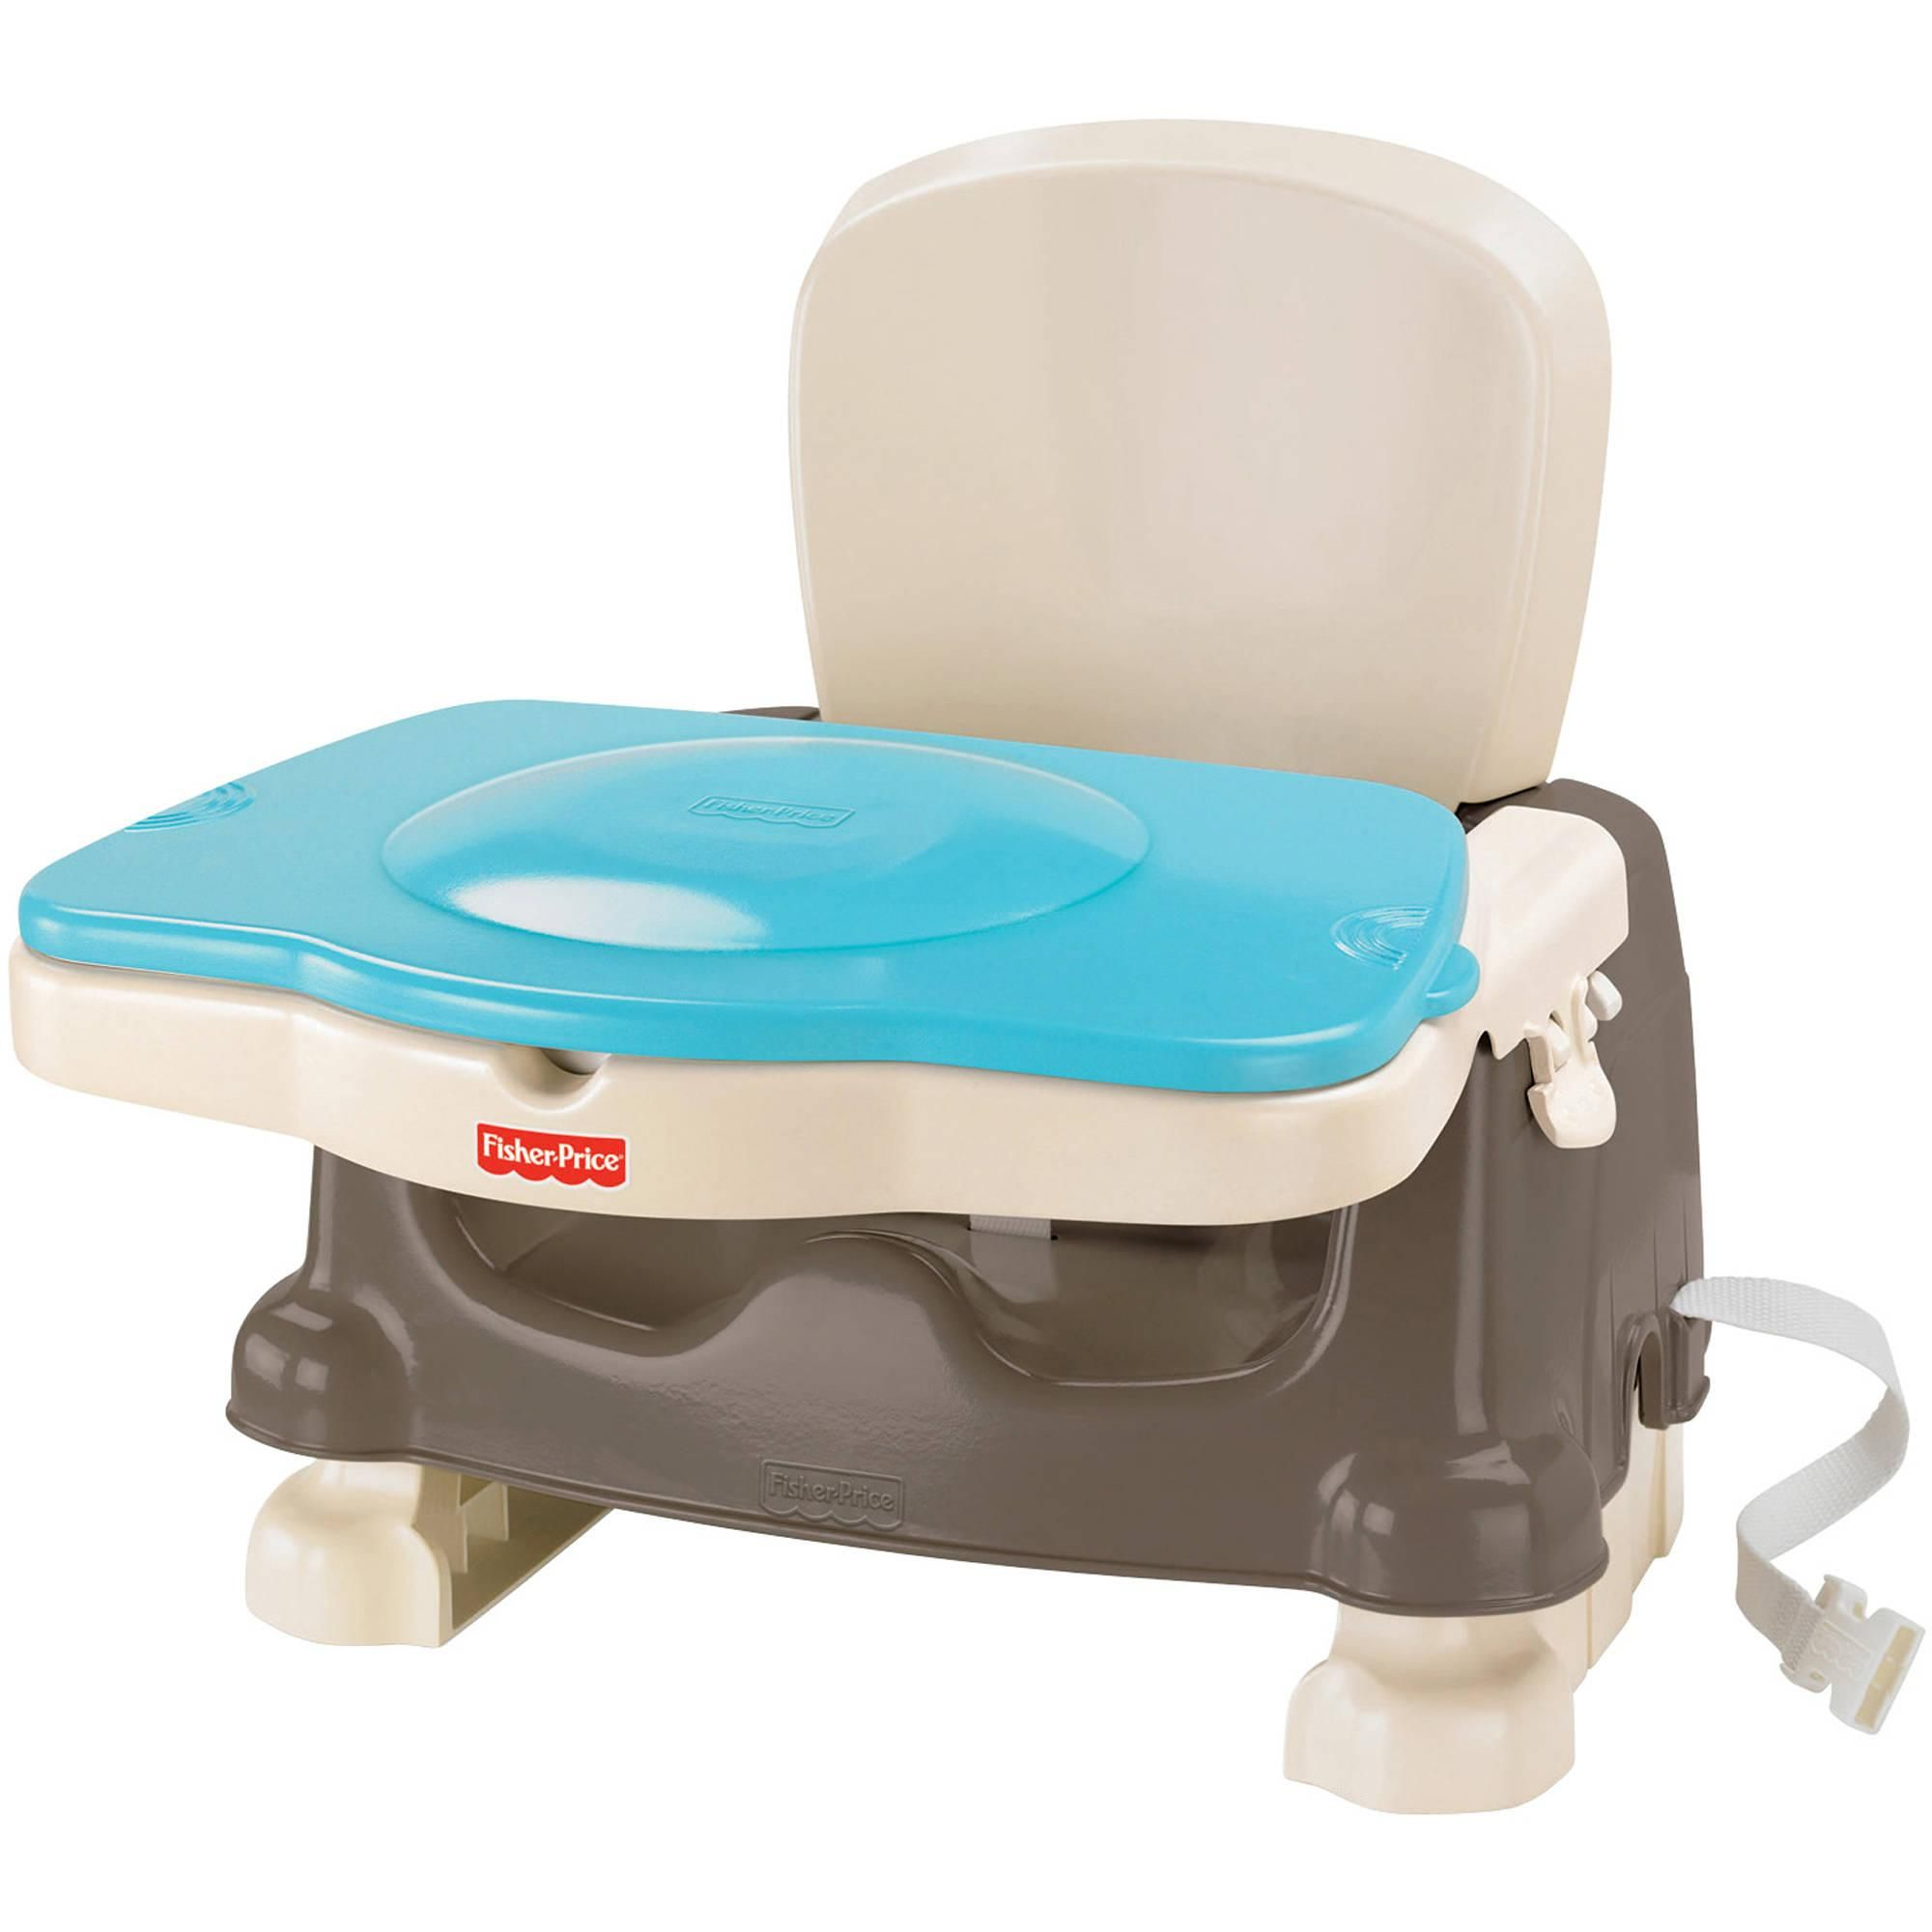 Booster Seat Or High Chair Which Is Better Cast Iron Chairs This Works Than A And It Doesn T Take Up That Much Space